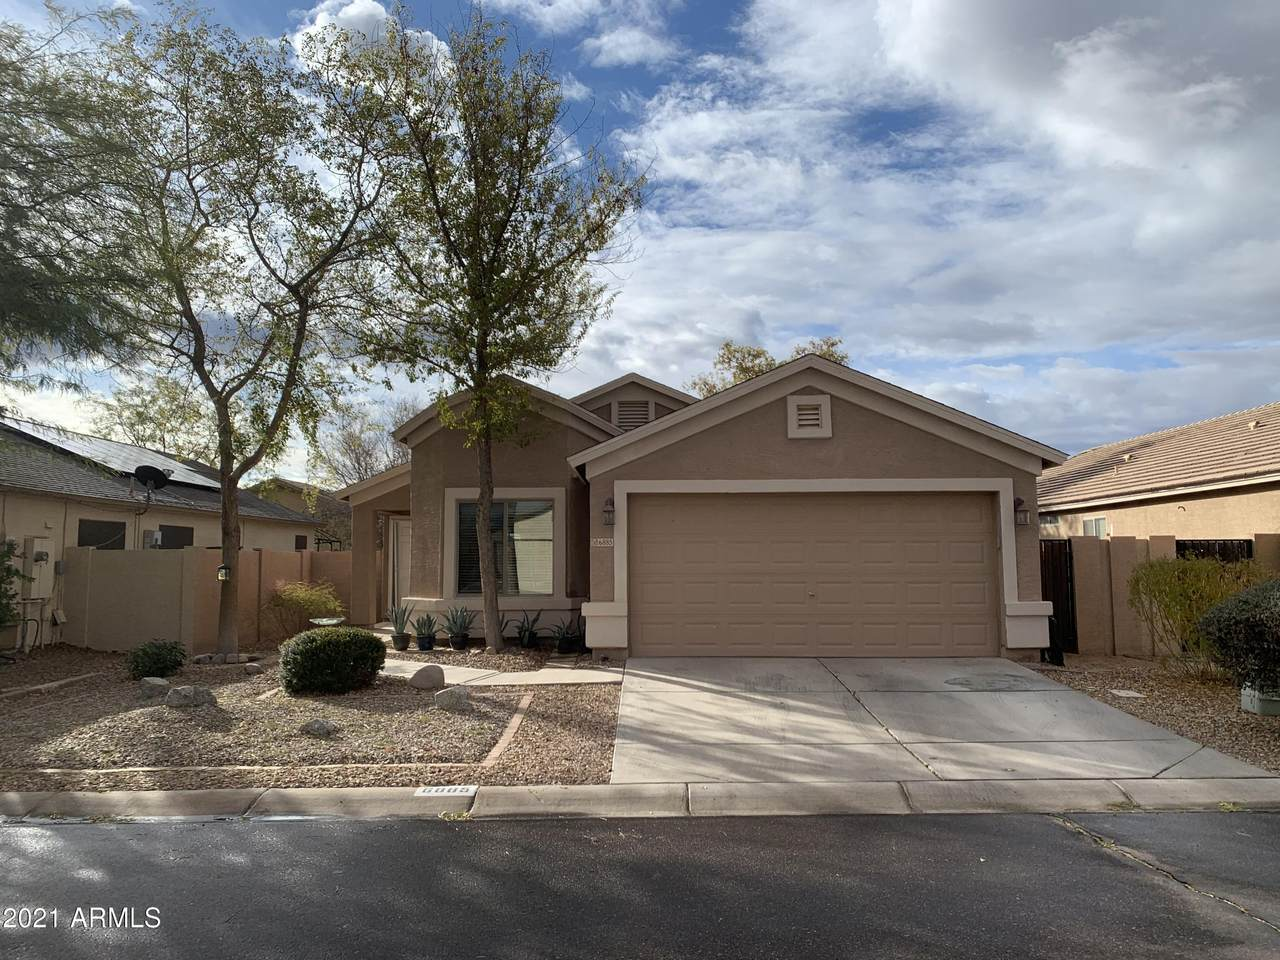 6885 San Tan Way - Photo 1